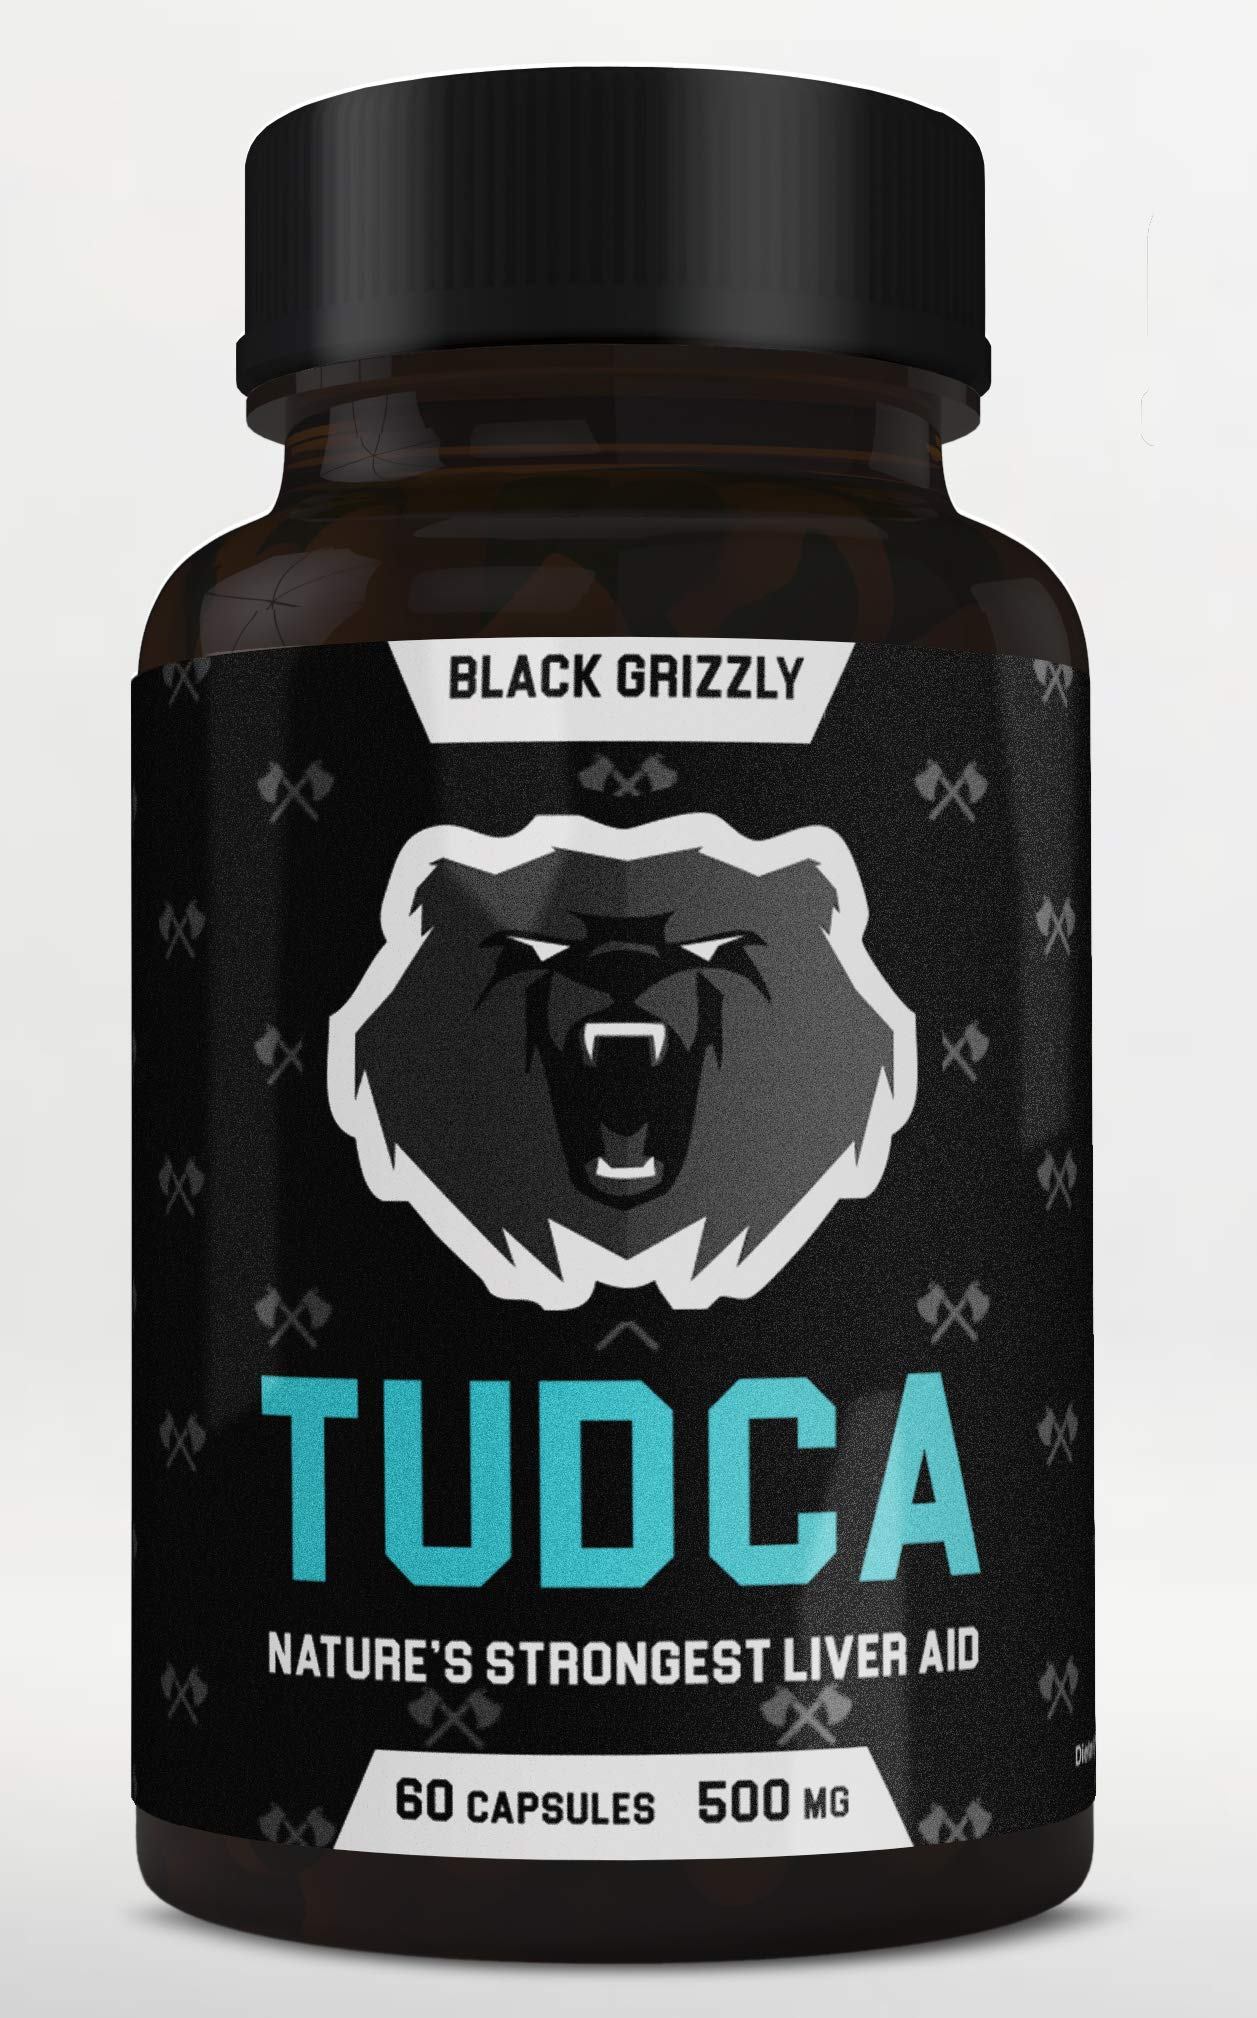 Black Grizzly Maximum Strength TUDCA 500 MG (Tauroursodeoxycholic Acid) - 500 MG Per Serving for Ultimate Liver Support & Immune Health -Nature's Strongest Liver Aid- 60 Serv by Black Grizzly